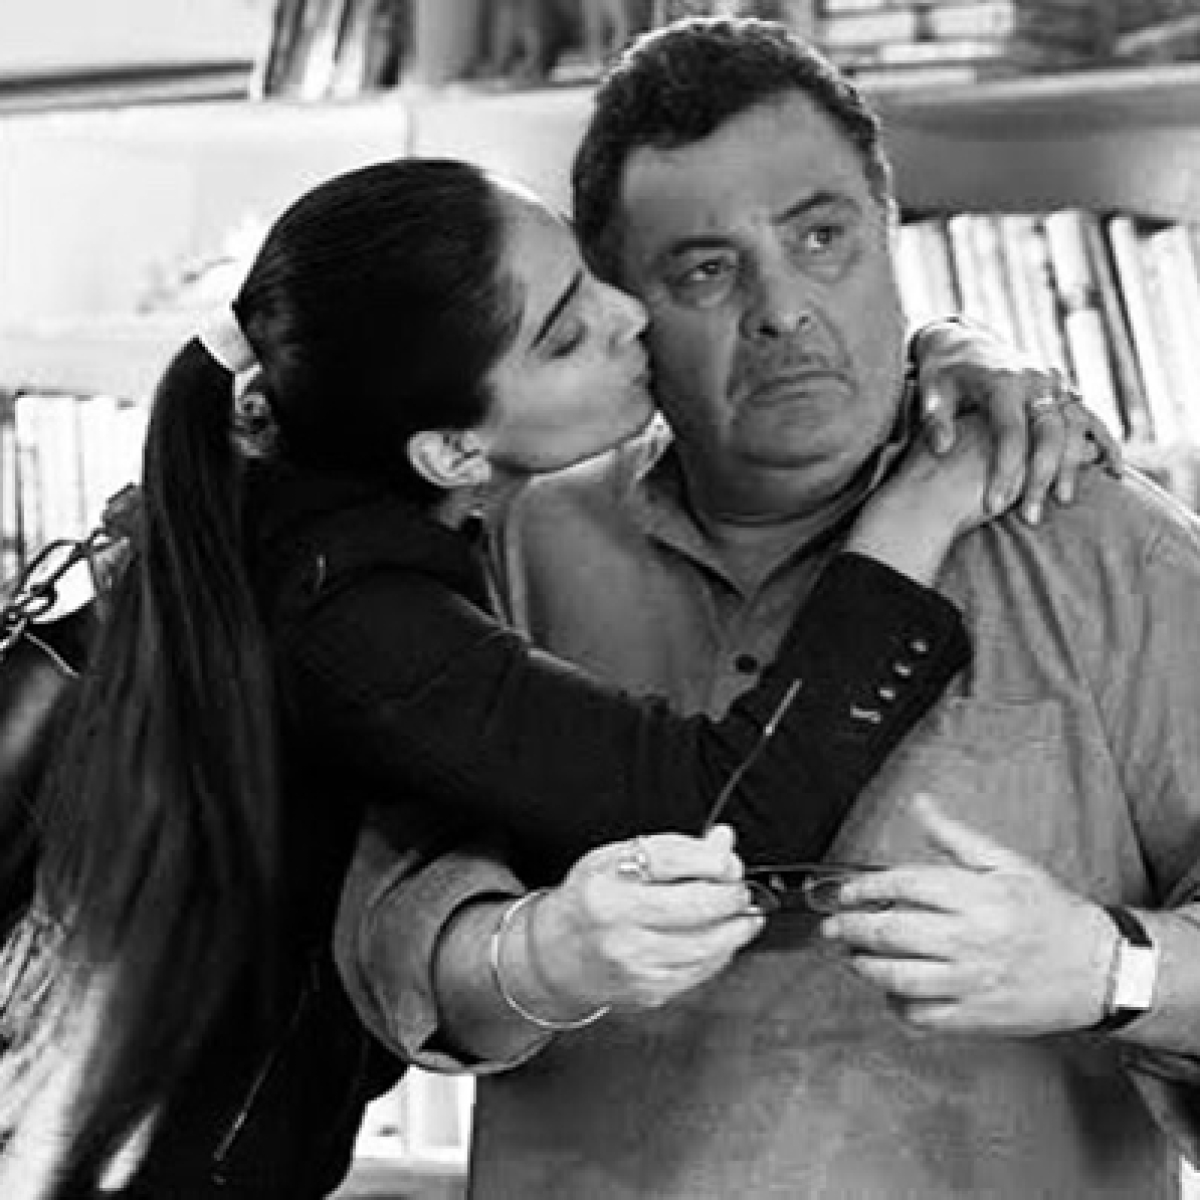 'Sorry, I couldn't say goodbye properly': Sonam Kapoor's heart-wrenching post on Rishi Kapoor's demise